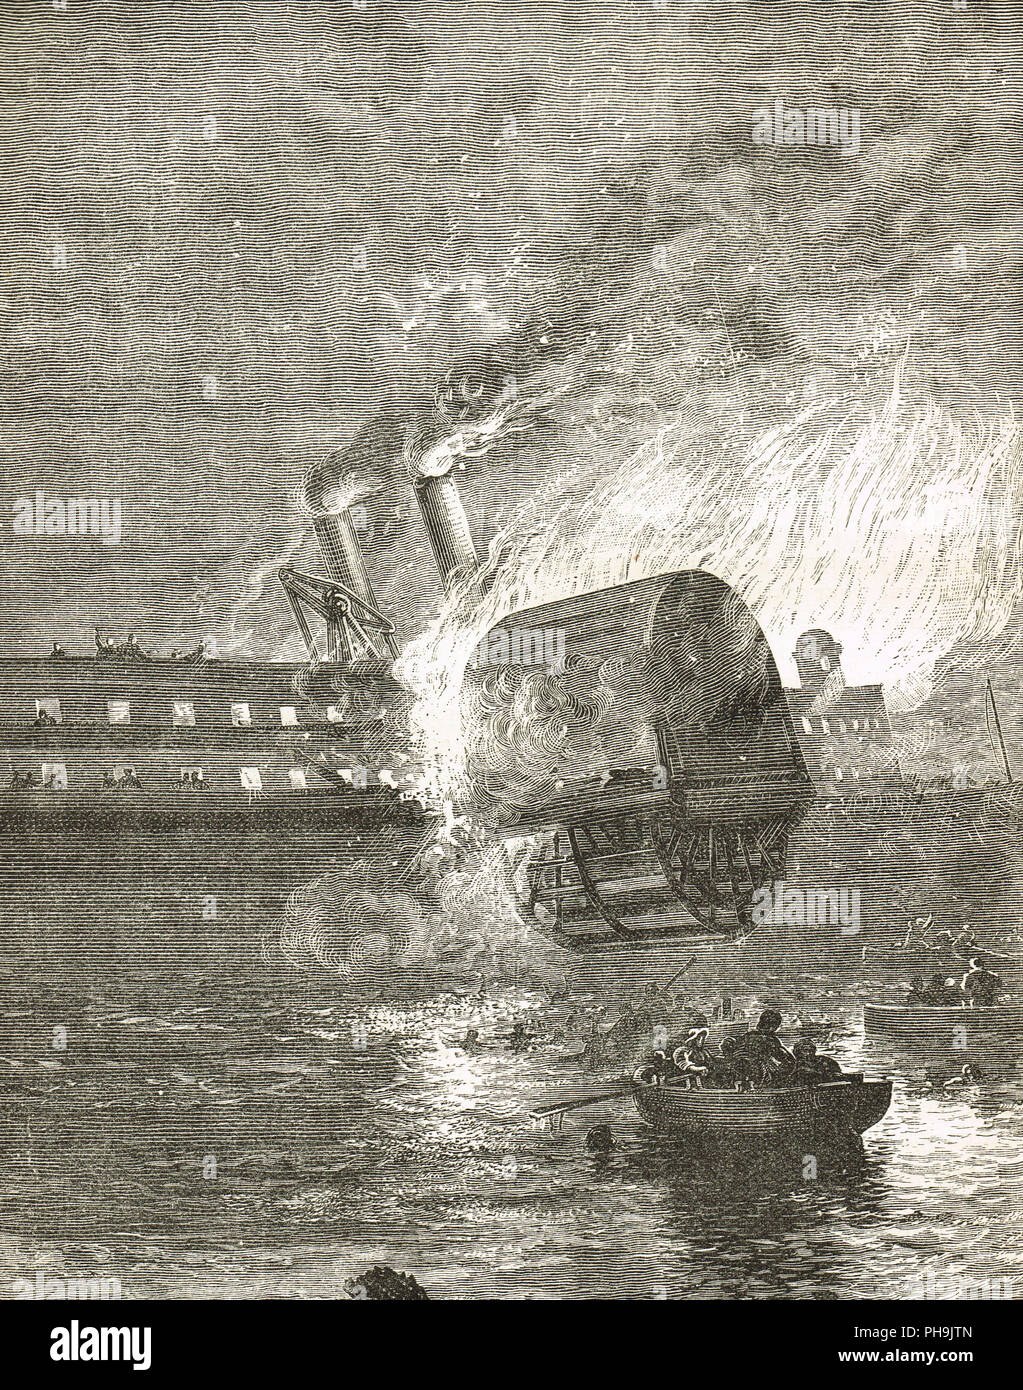 The steamboat Erie on fire, 9 August 1841, later renamed Jersey in the anonymous prose sketch, entitled The Helmsman of Lake Erie - Stock Image